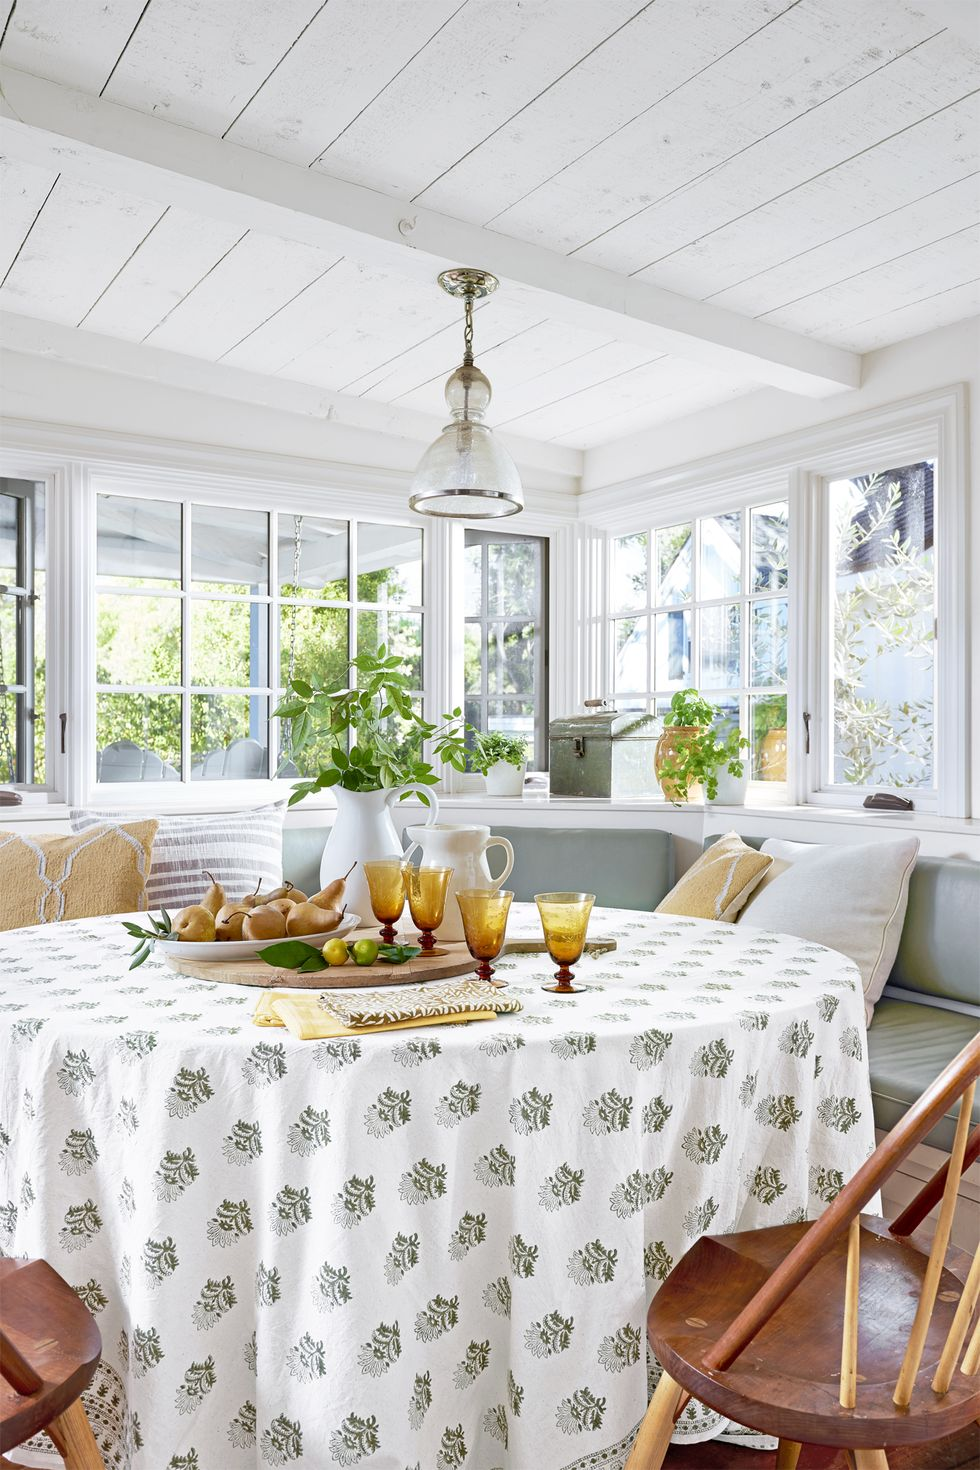 5 Simple Ways to Decorate for Spring